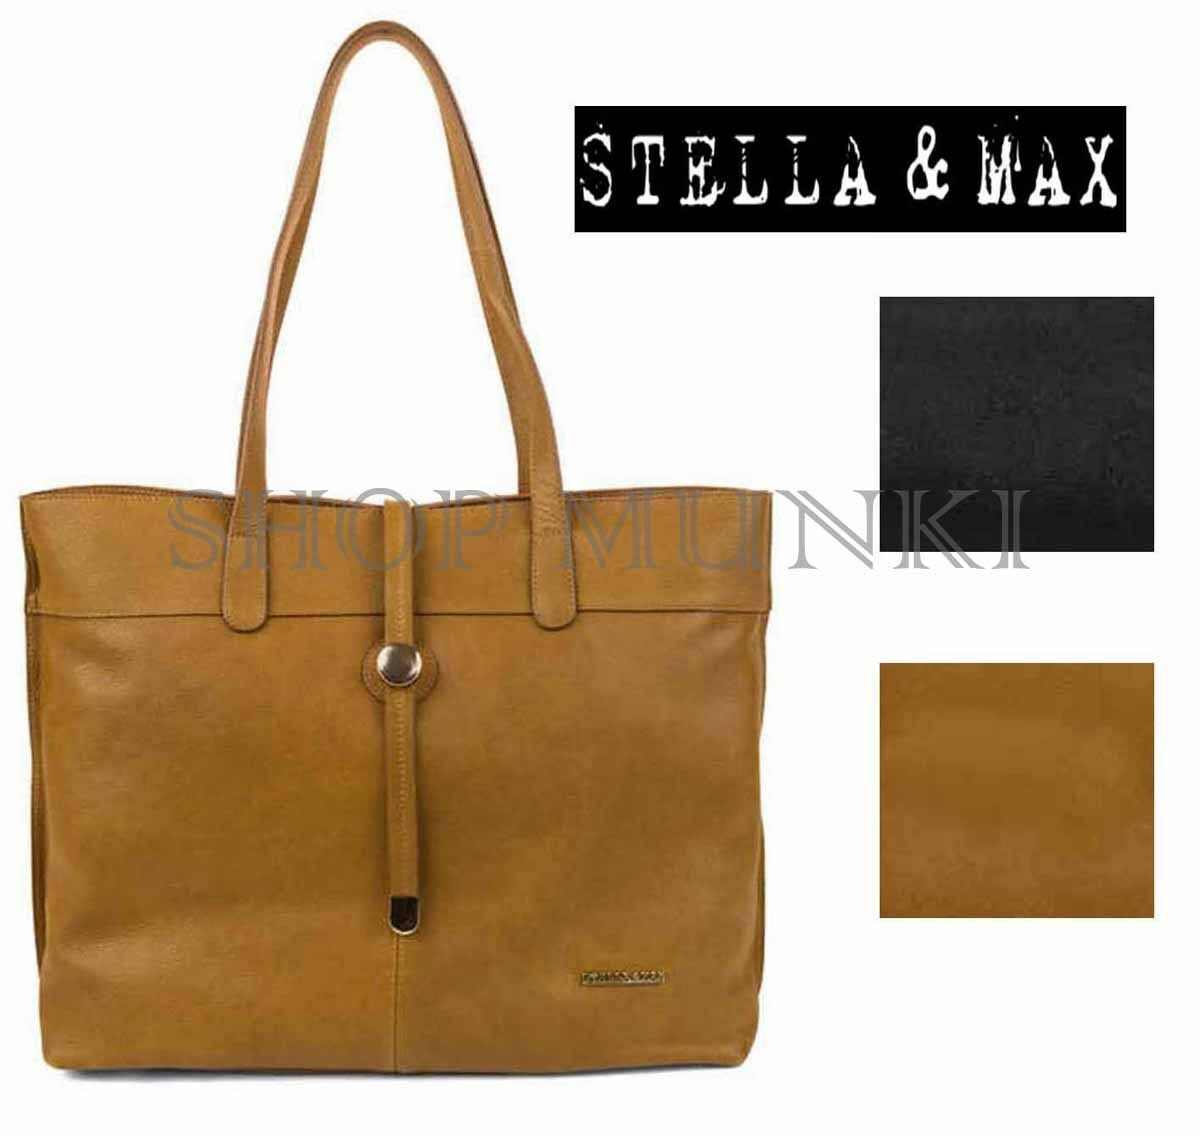 Stella   Max Leather Tote Hand Bag Purse Black Top Zip 1041553 SHOPPER for  sale online  86b925348d1f5